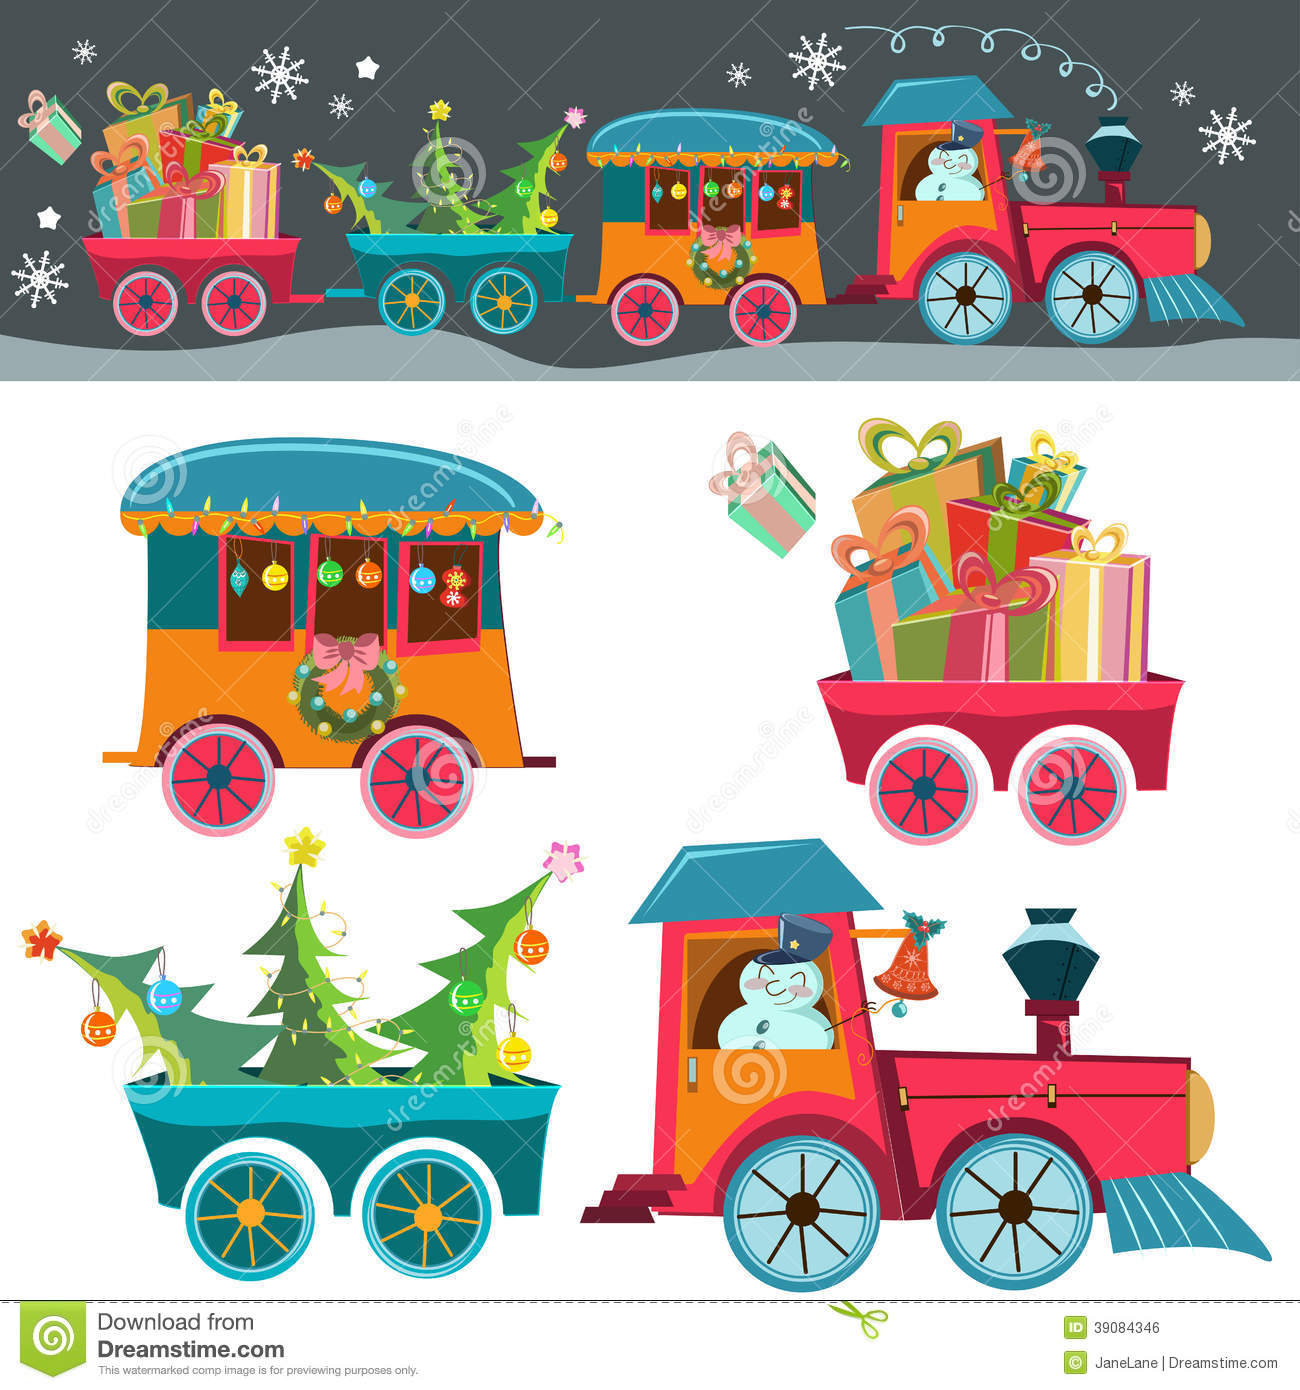 Christmas Toys Cartoon : Christmas train stock vector illustration of present